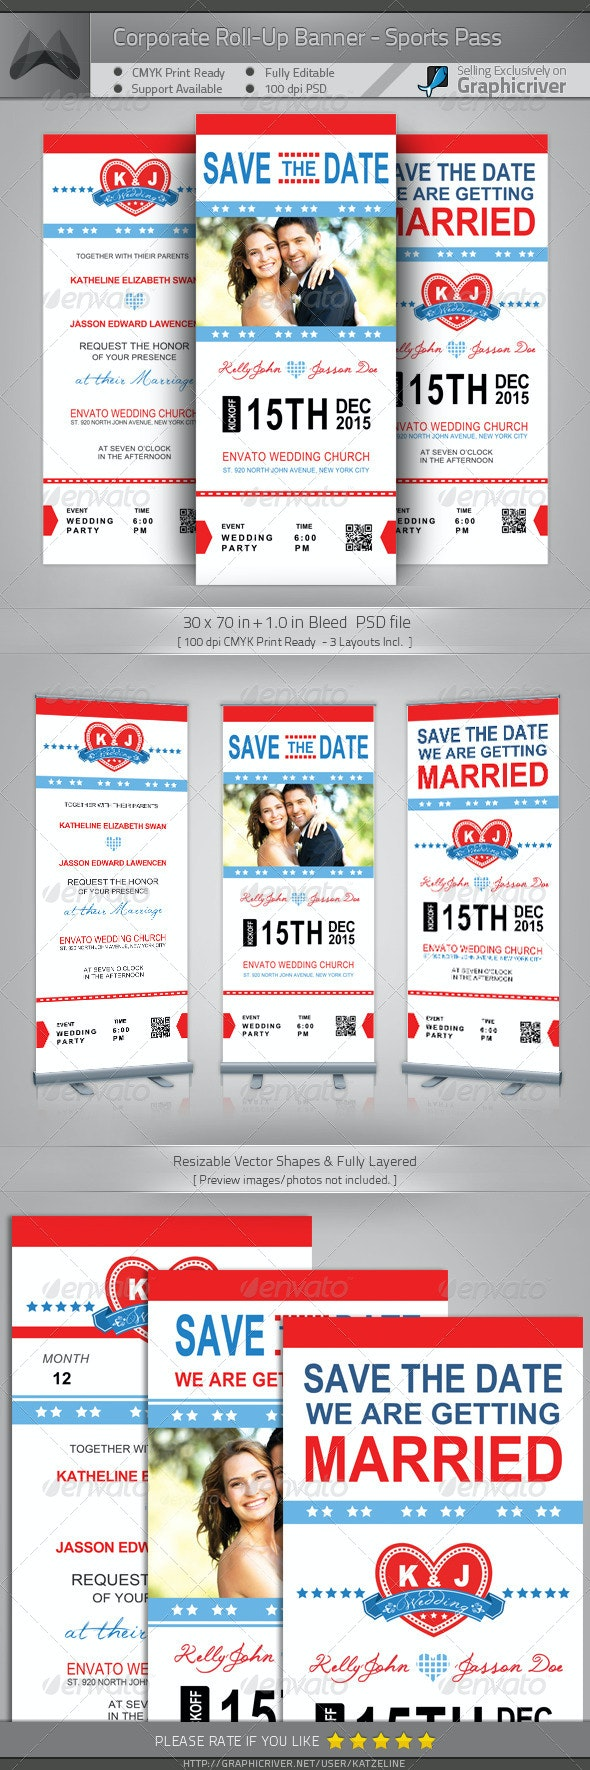 Wedding Roll-up Banner - Sports Pass - Signage Print Templates